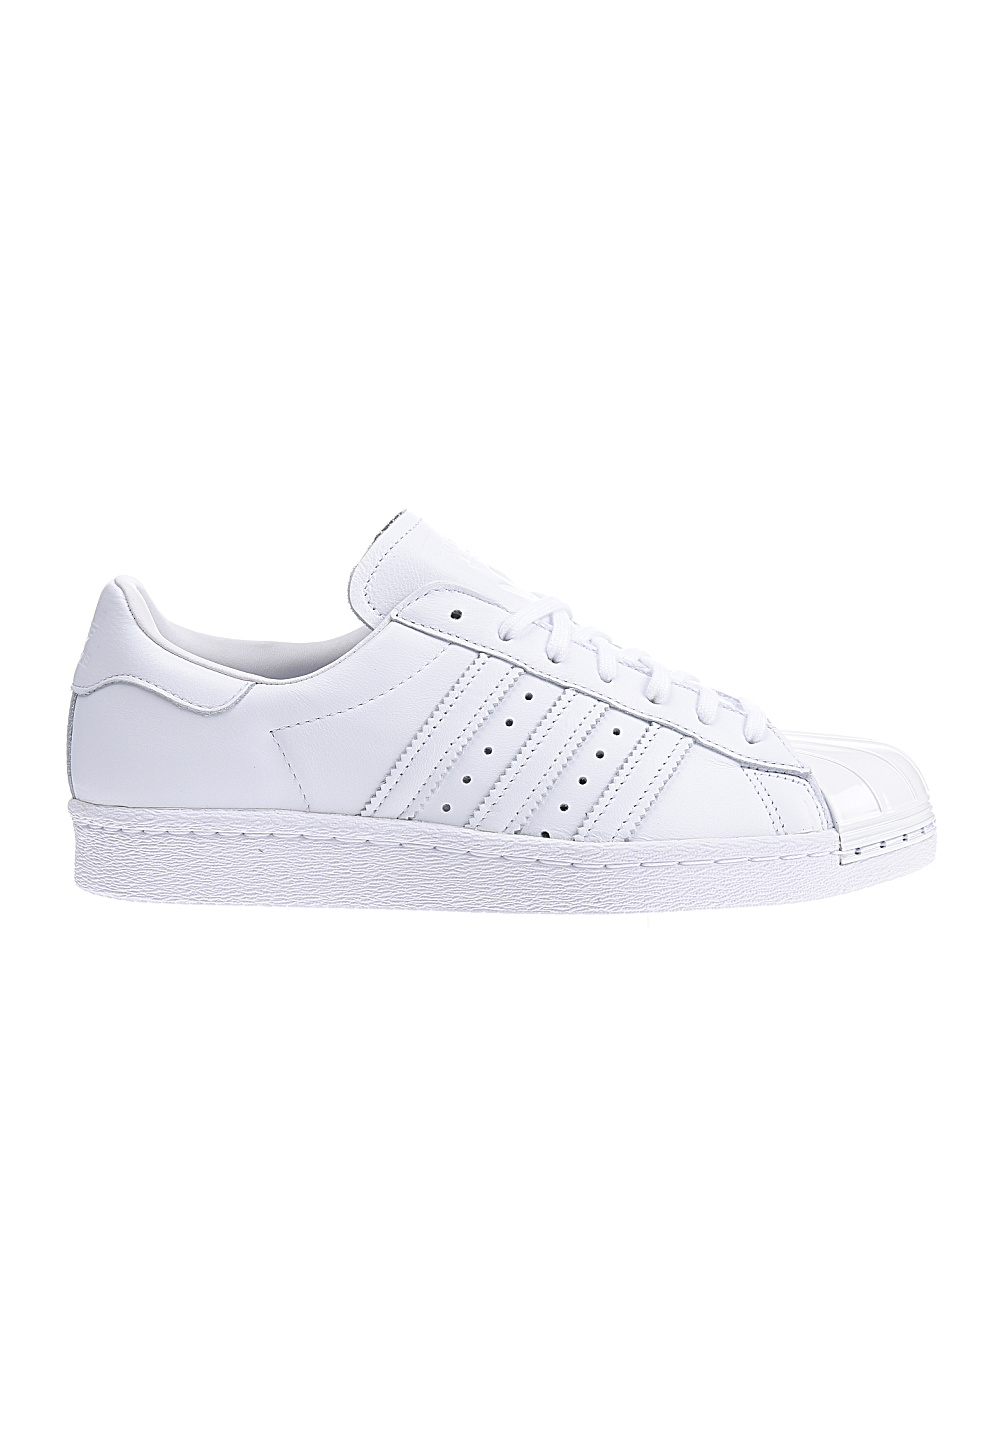 Adidas Trainers Womens Superstar 80s Metal Toe White